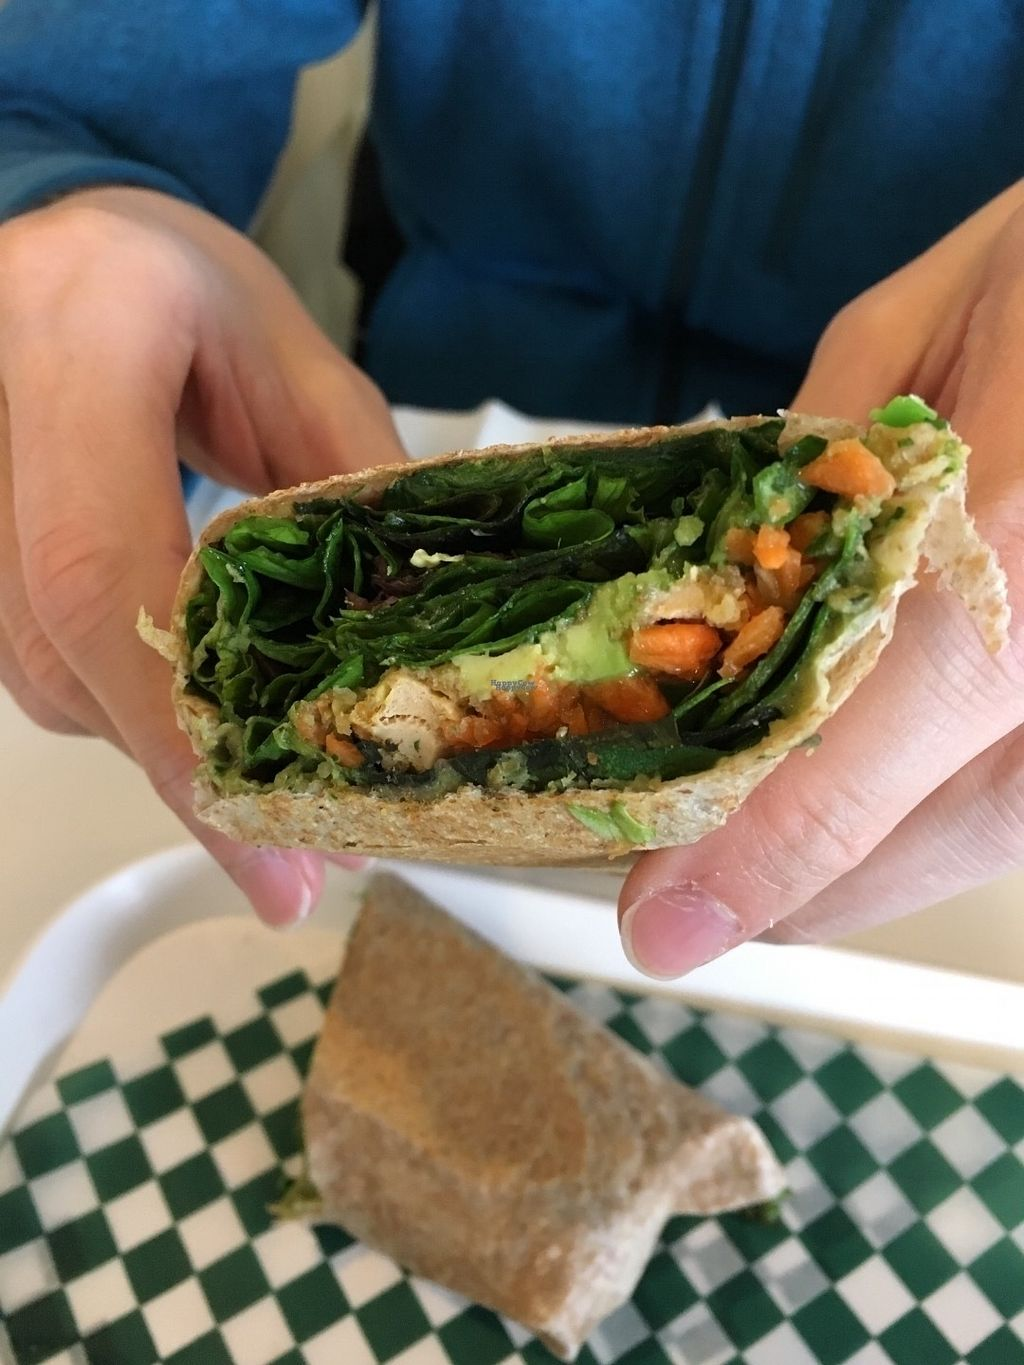 """Photo of CLOSED: Gojigo  by <a href=""""/members/profile/vegan%20frog"""">vegan frog</a> <br/>Wrap <br/> October 22, 2016  - <a href='/contact/abuse/image/77074/183524'>Report</a>"""